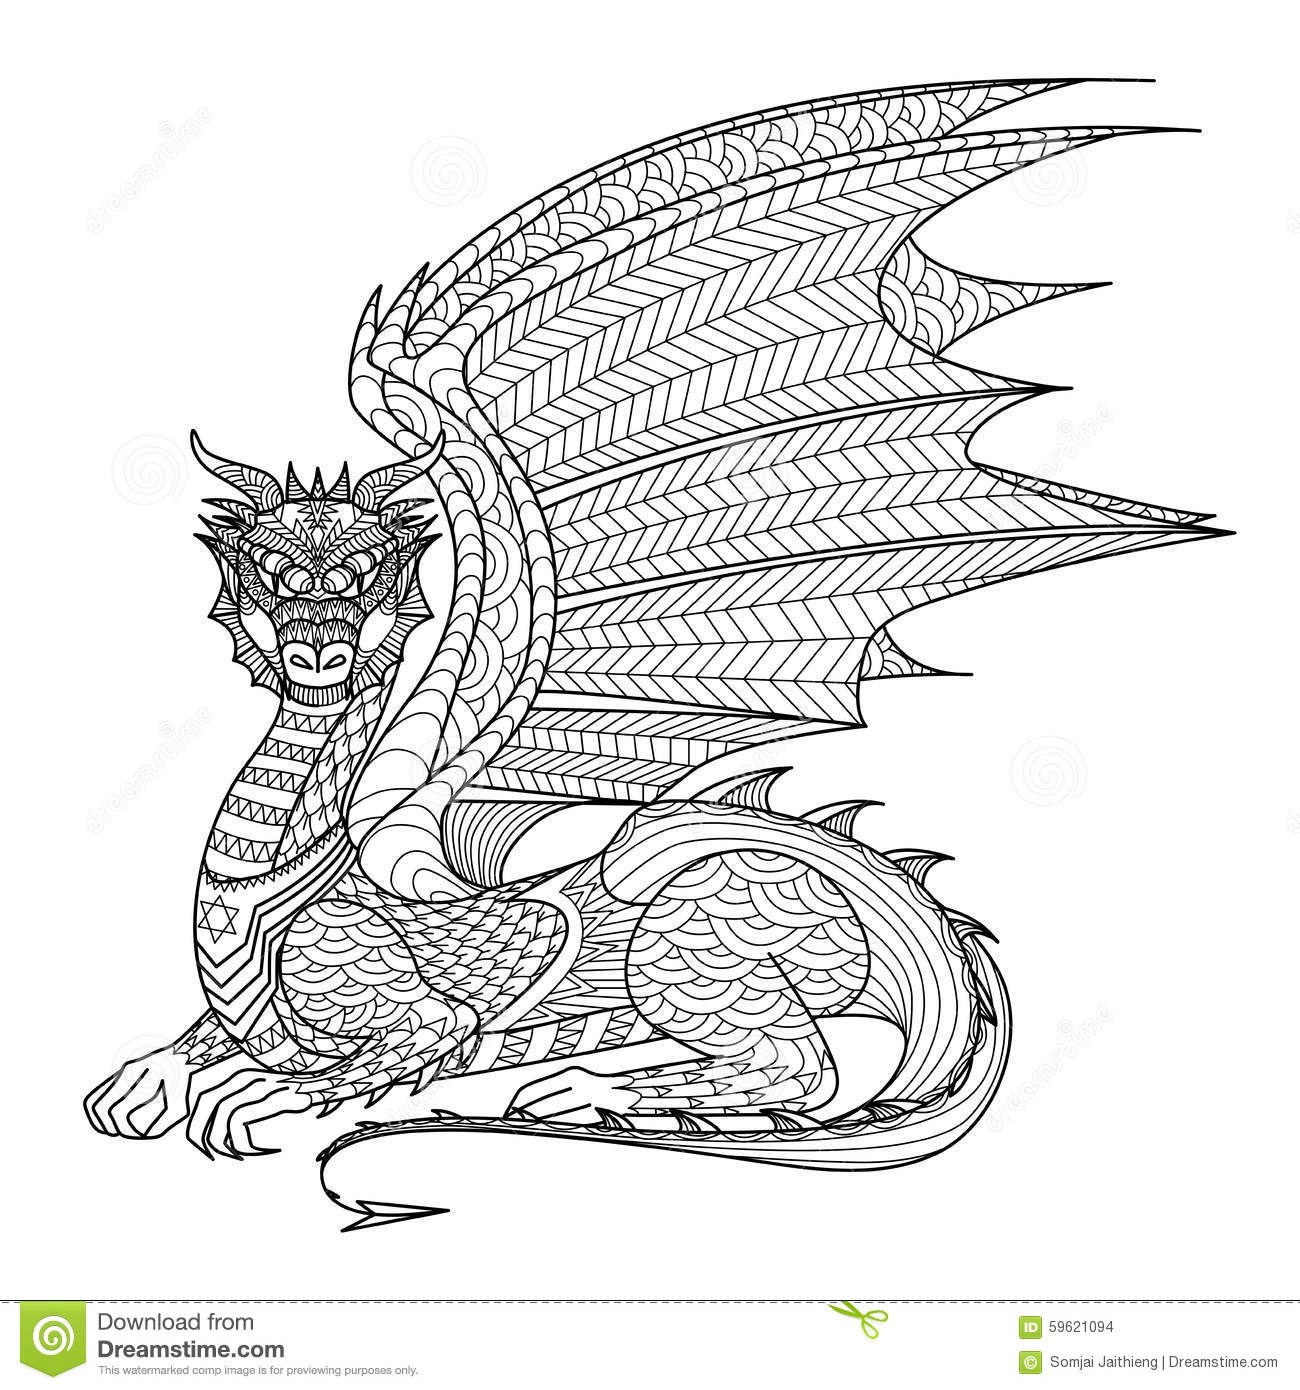 Drawing Dragon For Coloring Book. Stock Vector